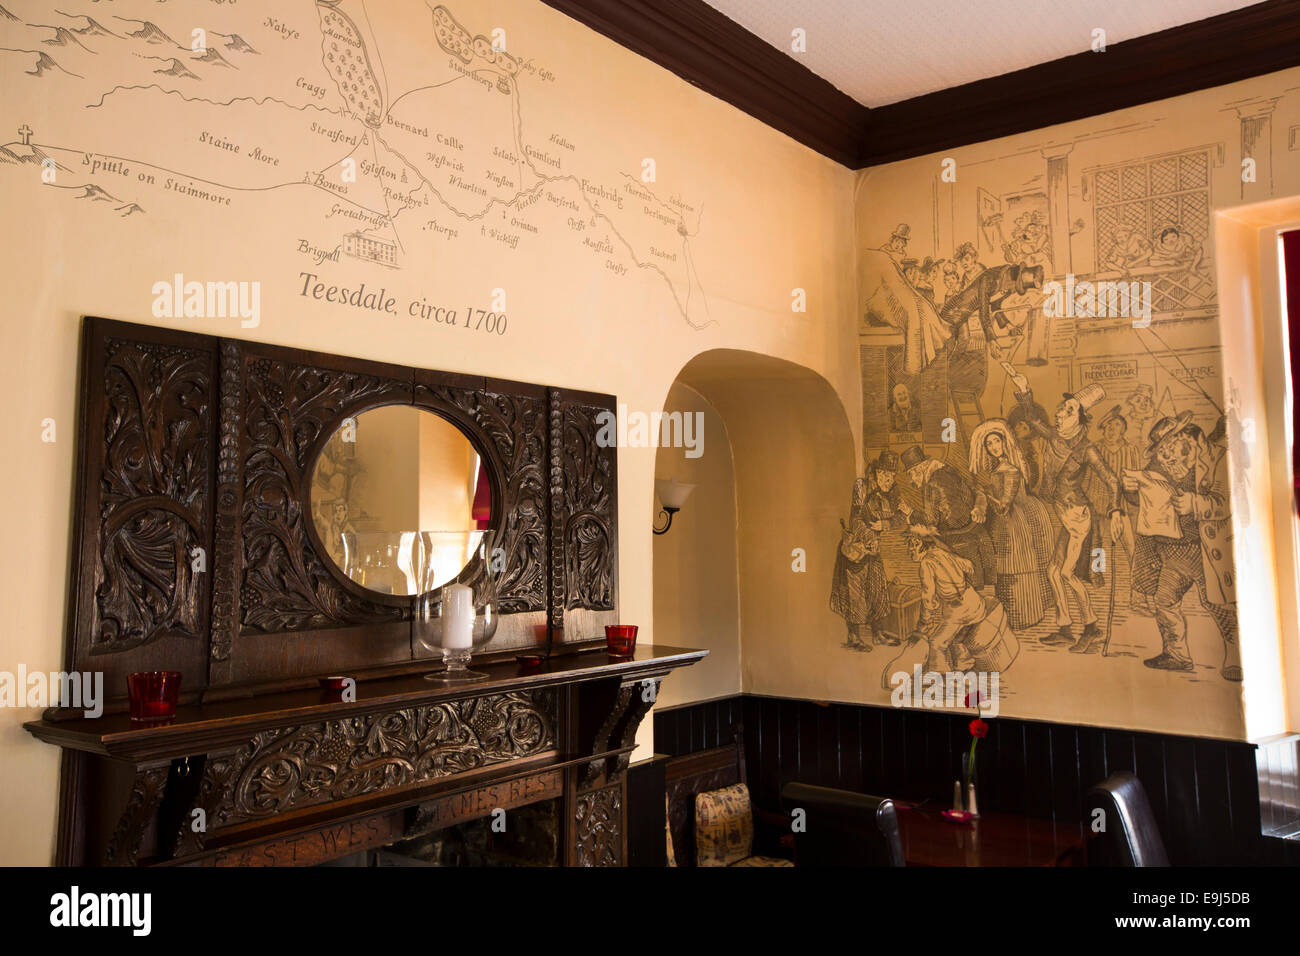 UK, County Durham, Greta Bridge, the Morritt Arms Hotel, Dickens Bistro, 2012 Dickens mural and Teesdale map by - Stock Image